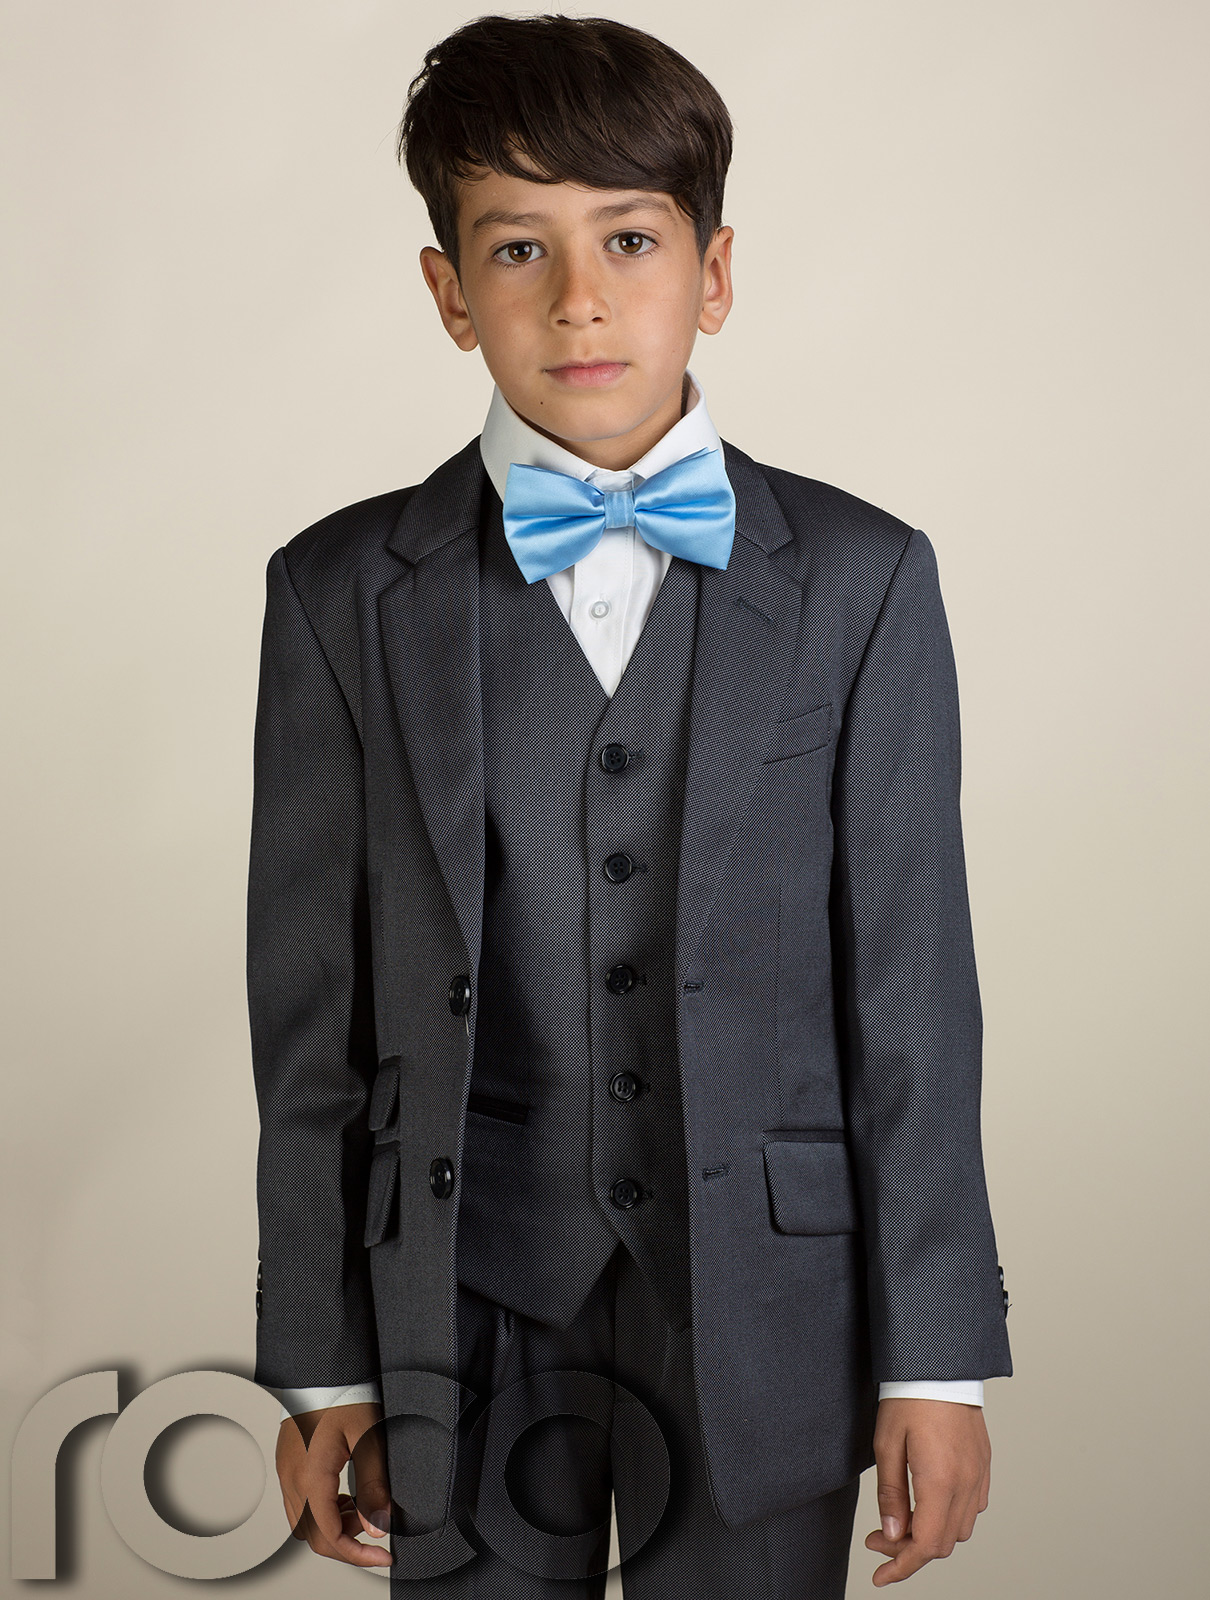 autoebookj1.ga we offer a complete selection of the finest names in kids suits boys white tuxedo for kids kids blue suit boys royal blue suit boys tuxedo suit boys formal suits boys charcoal suit cheap boys dress suits and much more. it becomes highly difficult to find the right size and the best fit in boys suits. It also becomes really.